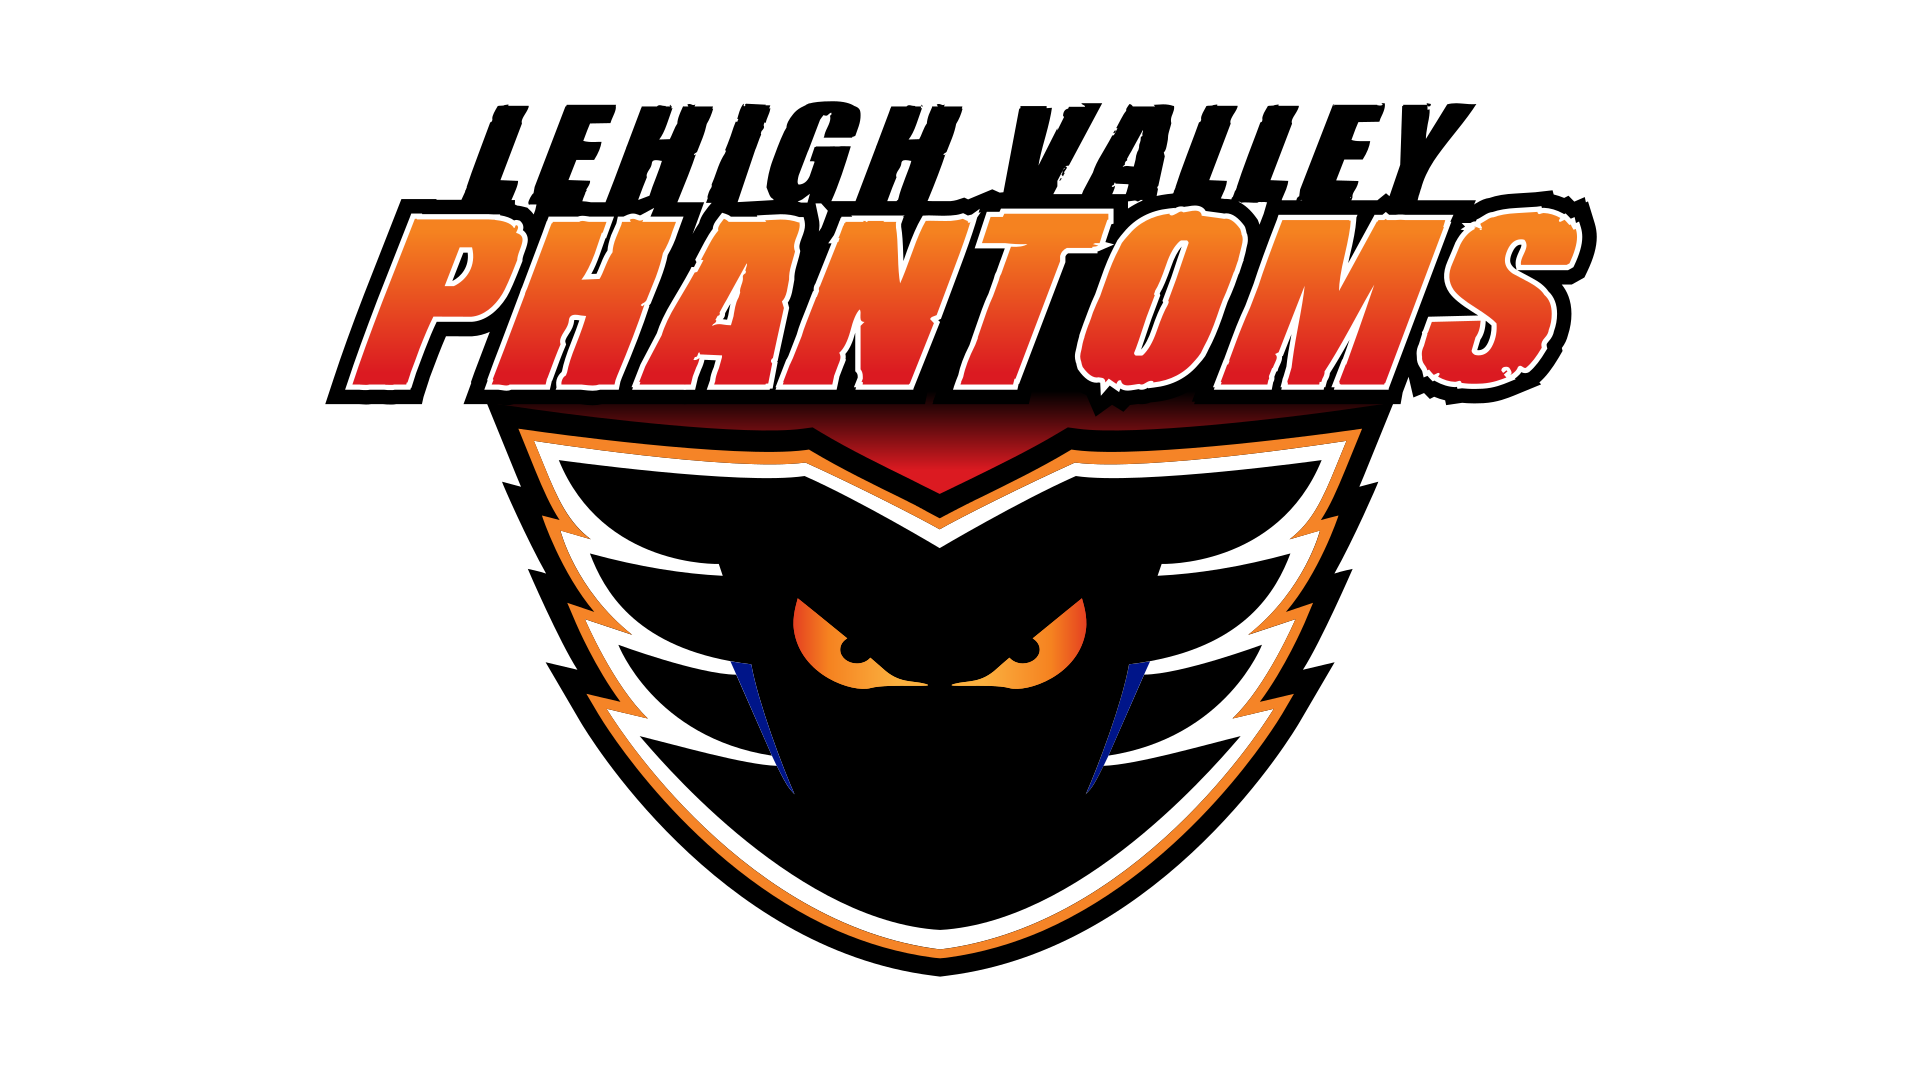 Meaning Lehigh Valley Phantoms logo and symbol.